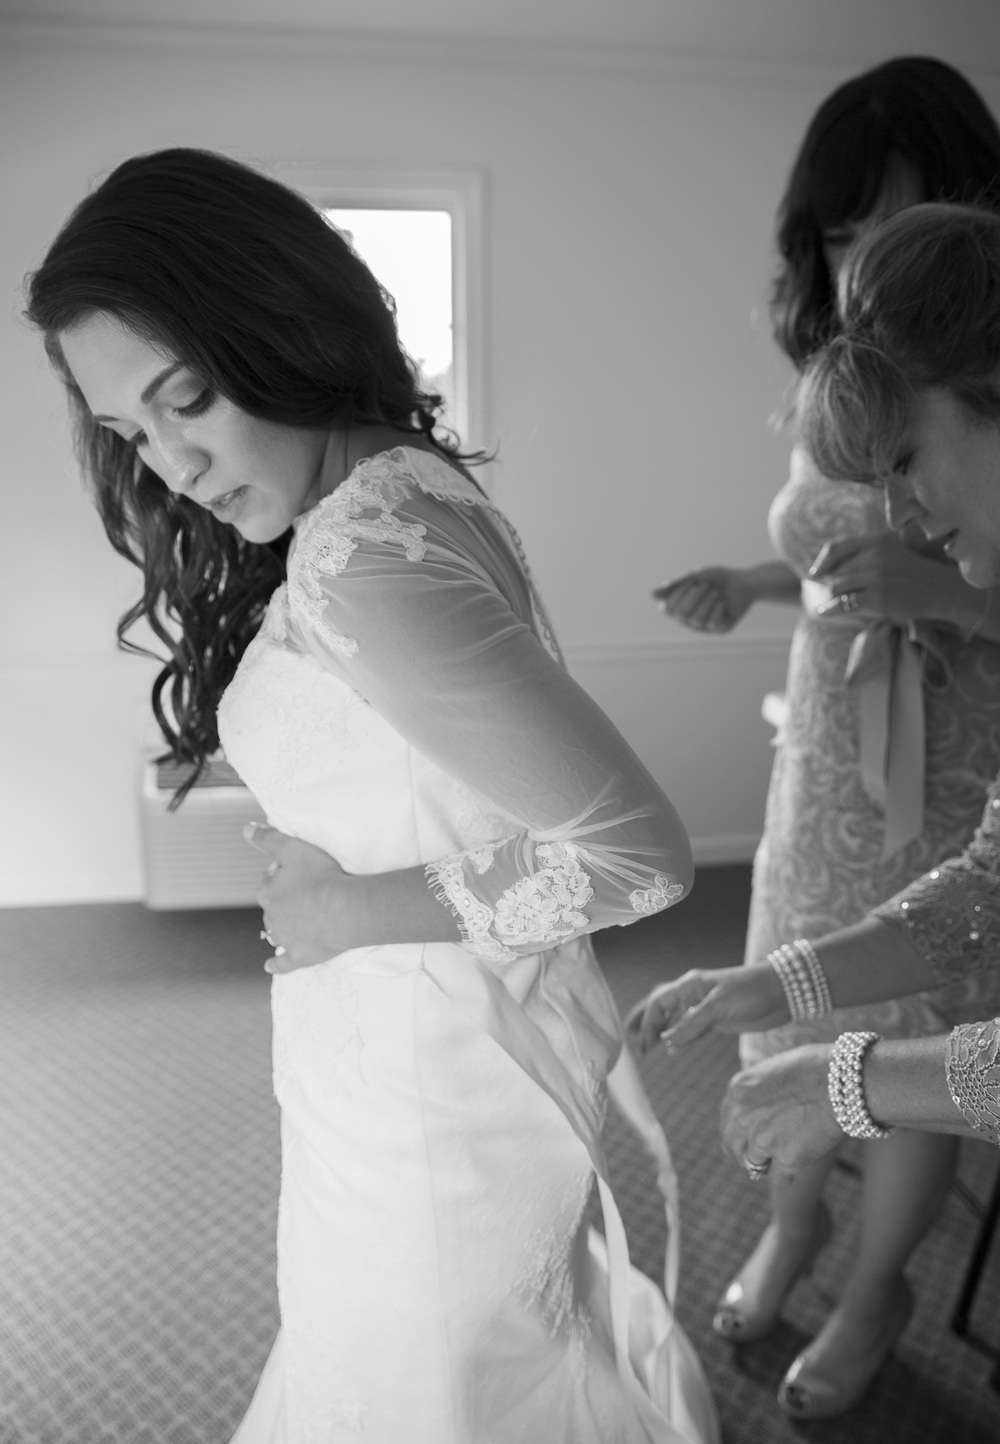 The woman in white finishing the final touches before the walk down the aisle. Pretty moving moment; both Alanna's adoptive mother + birth mother were there by her side the entire time.